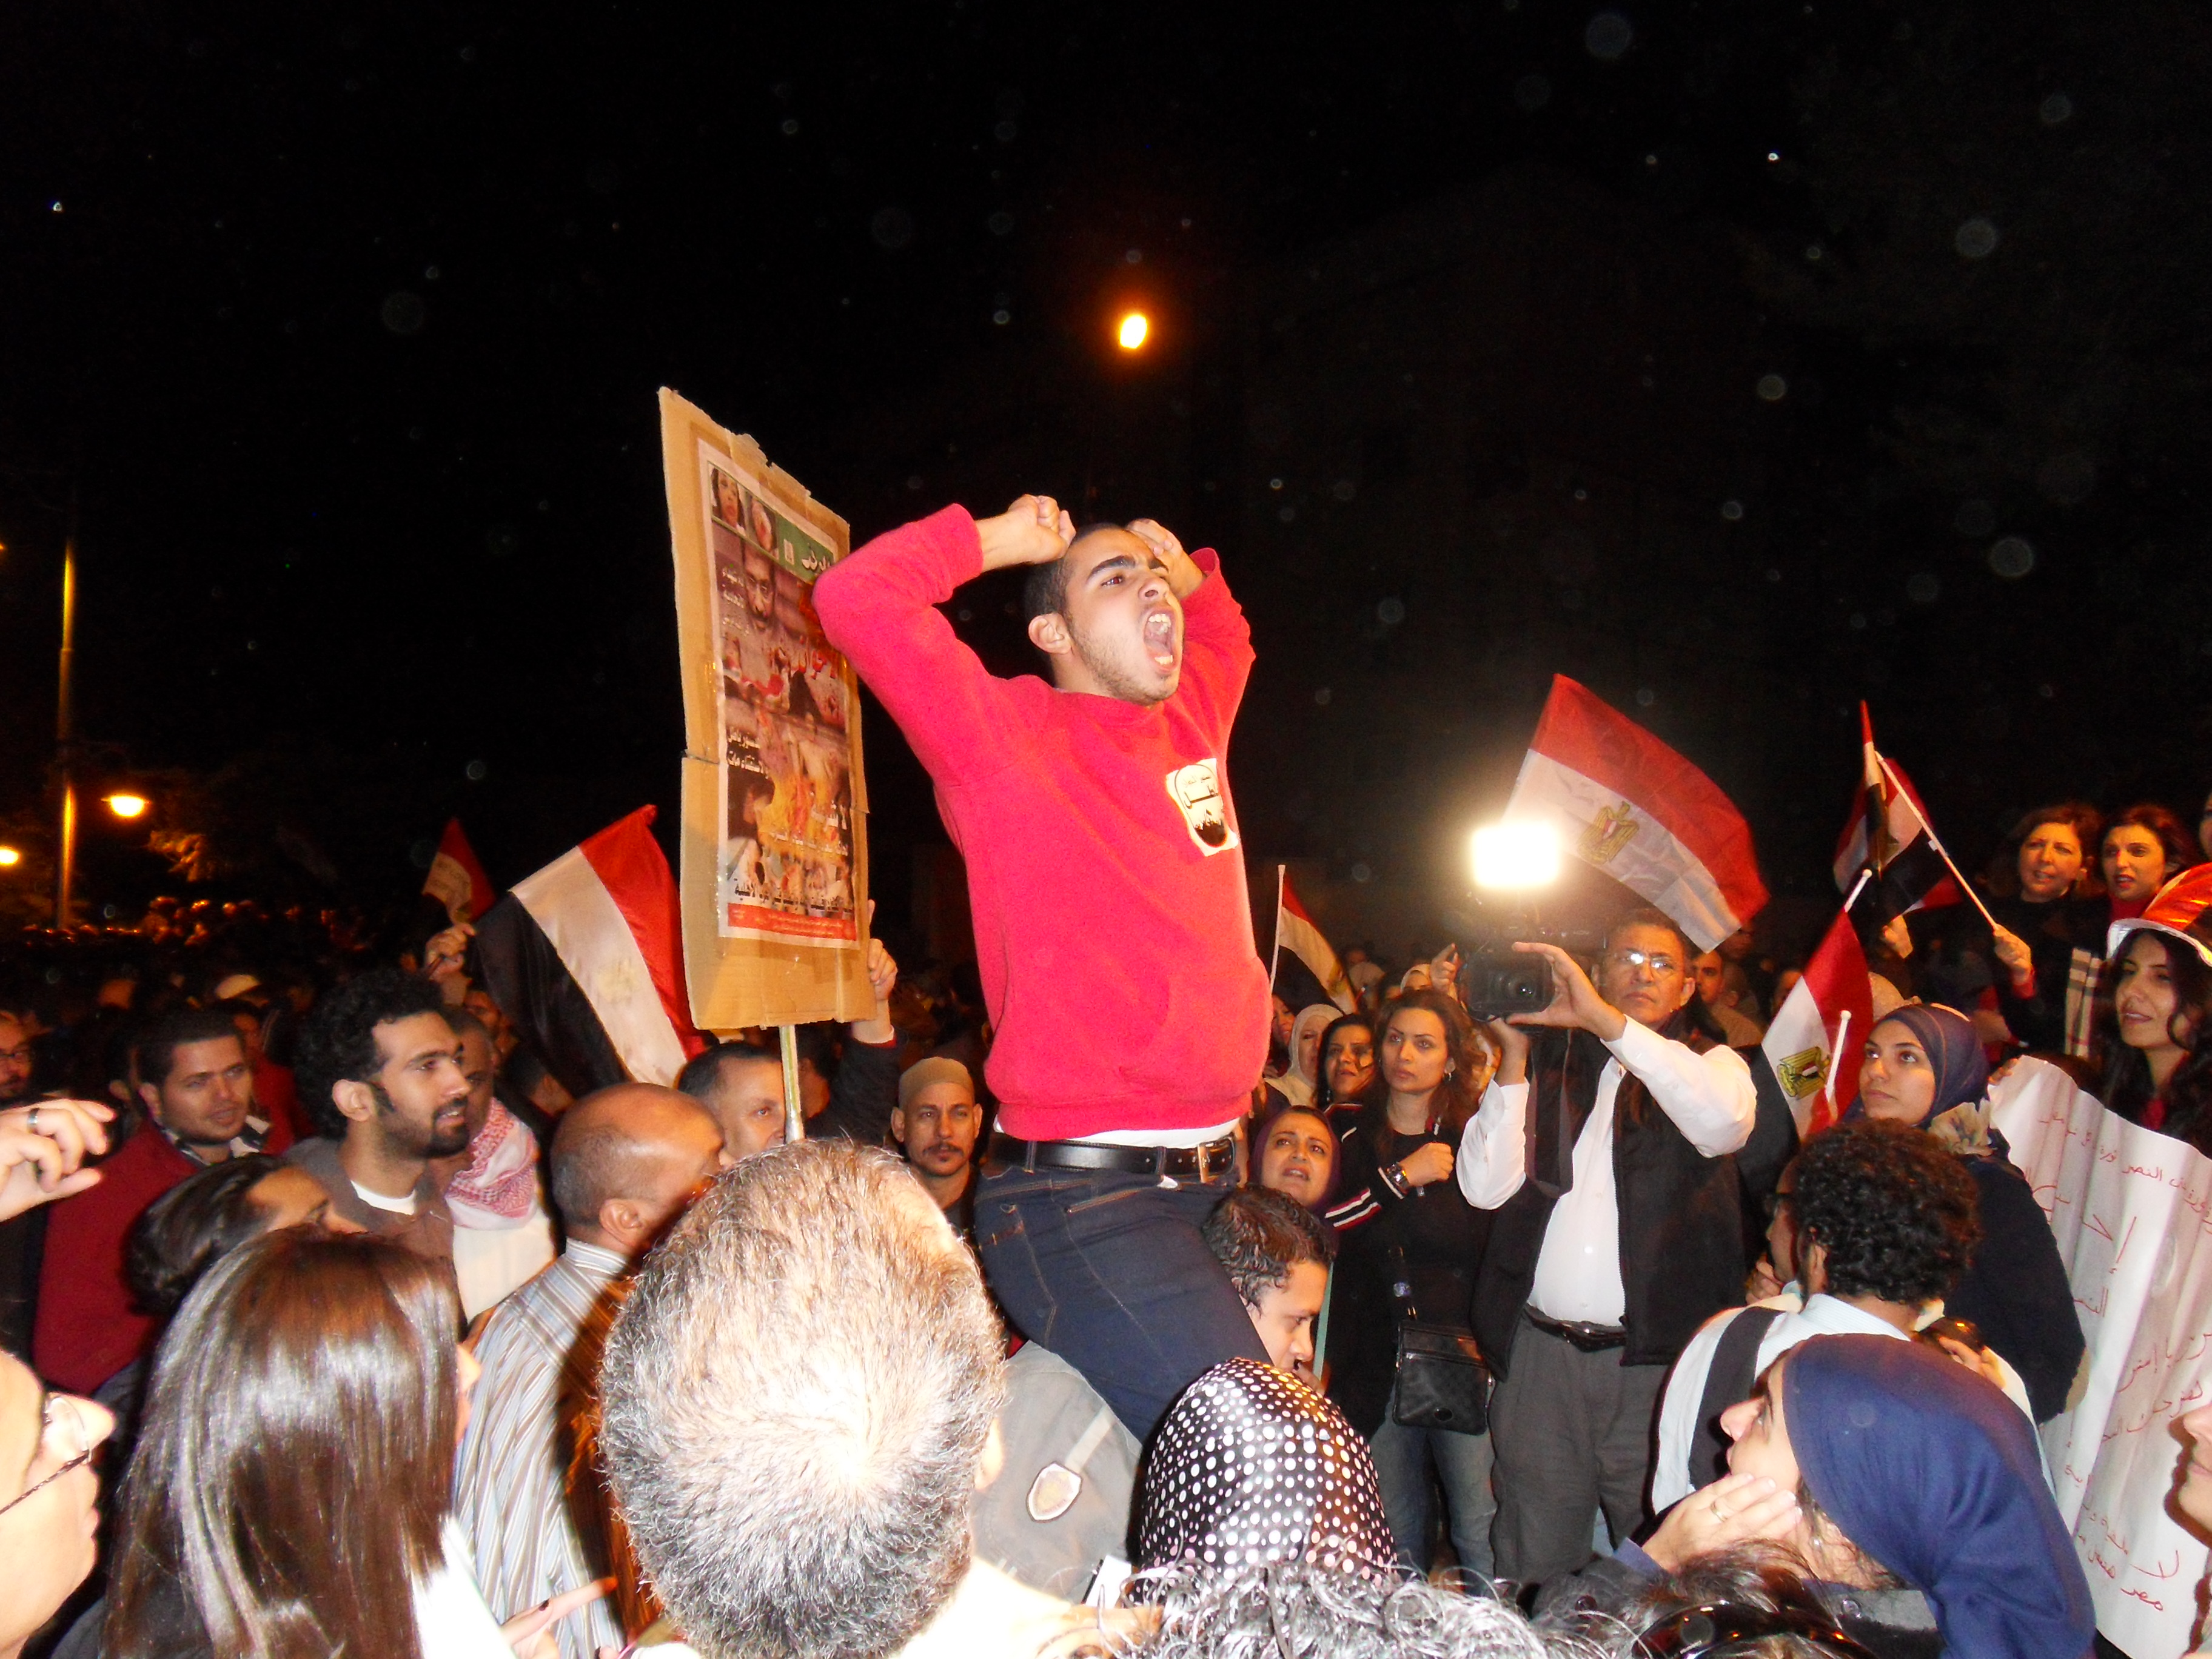 Protesters chanting against Morsi.